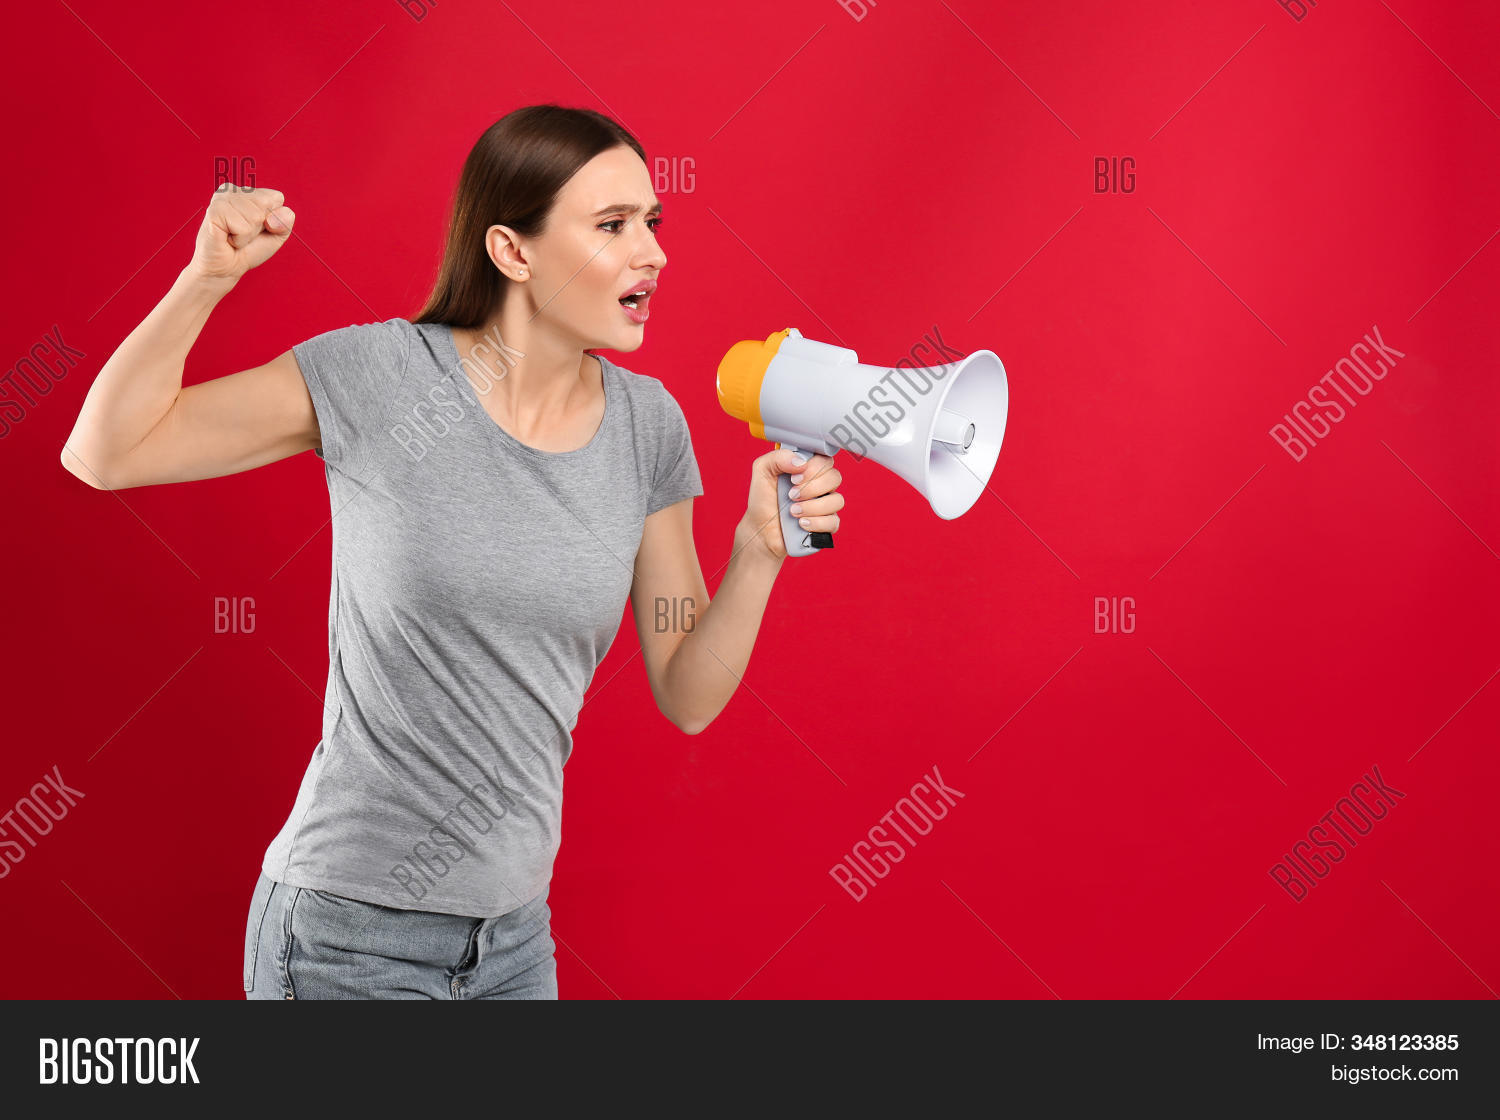 Young woman with megaphone on red background